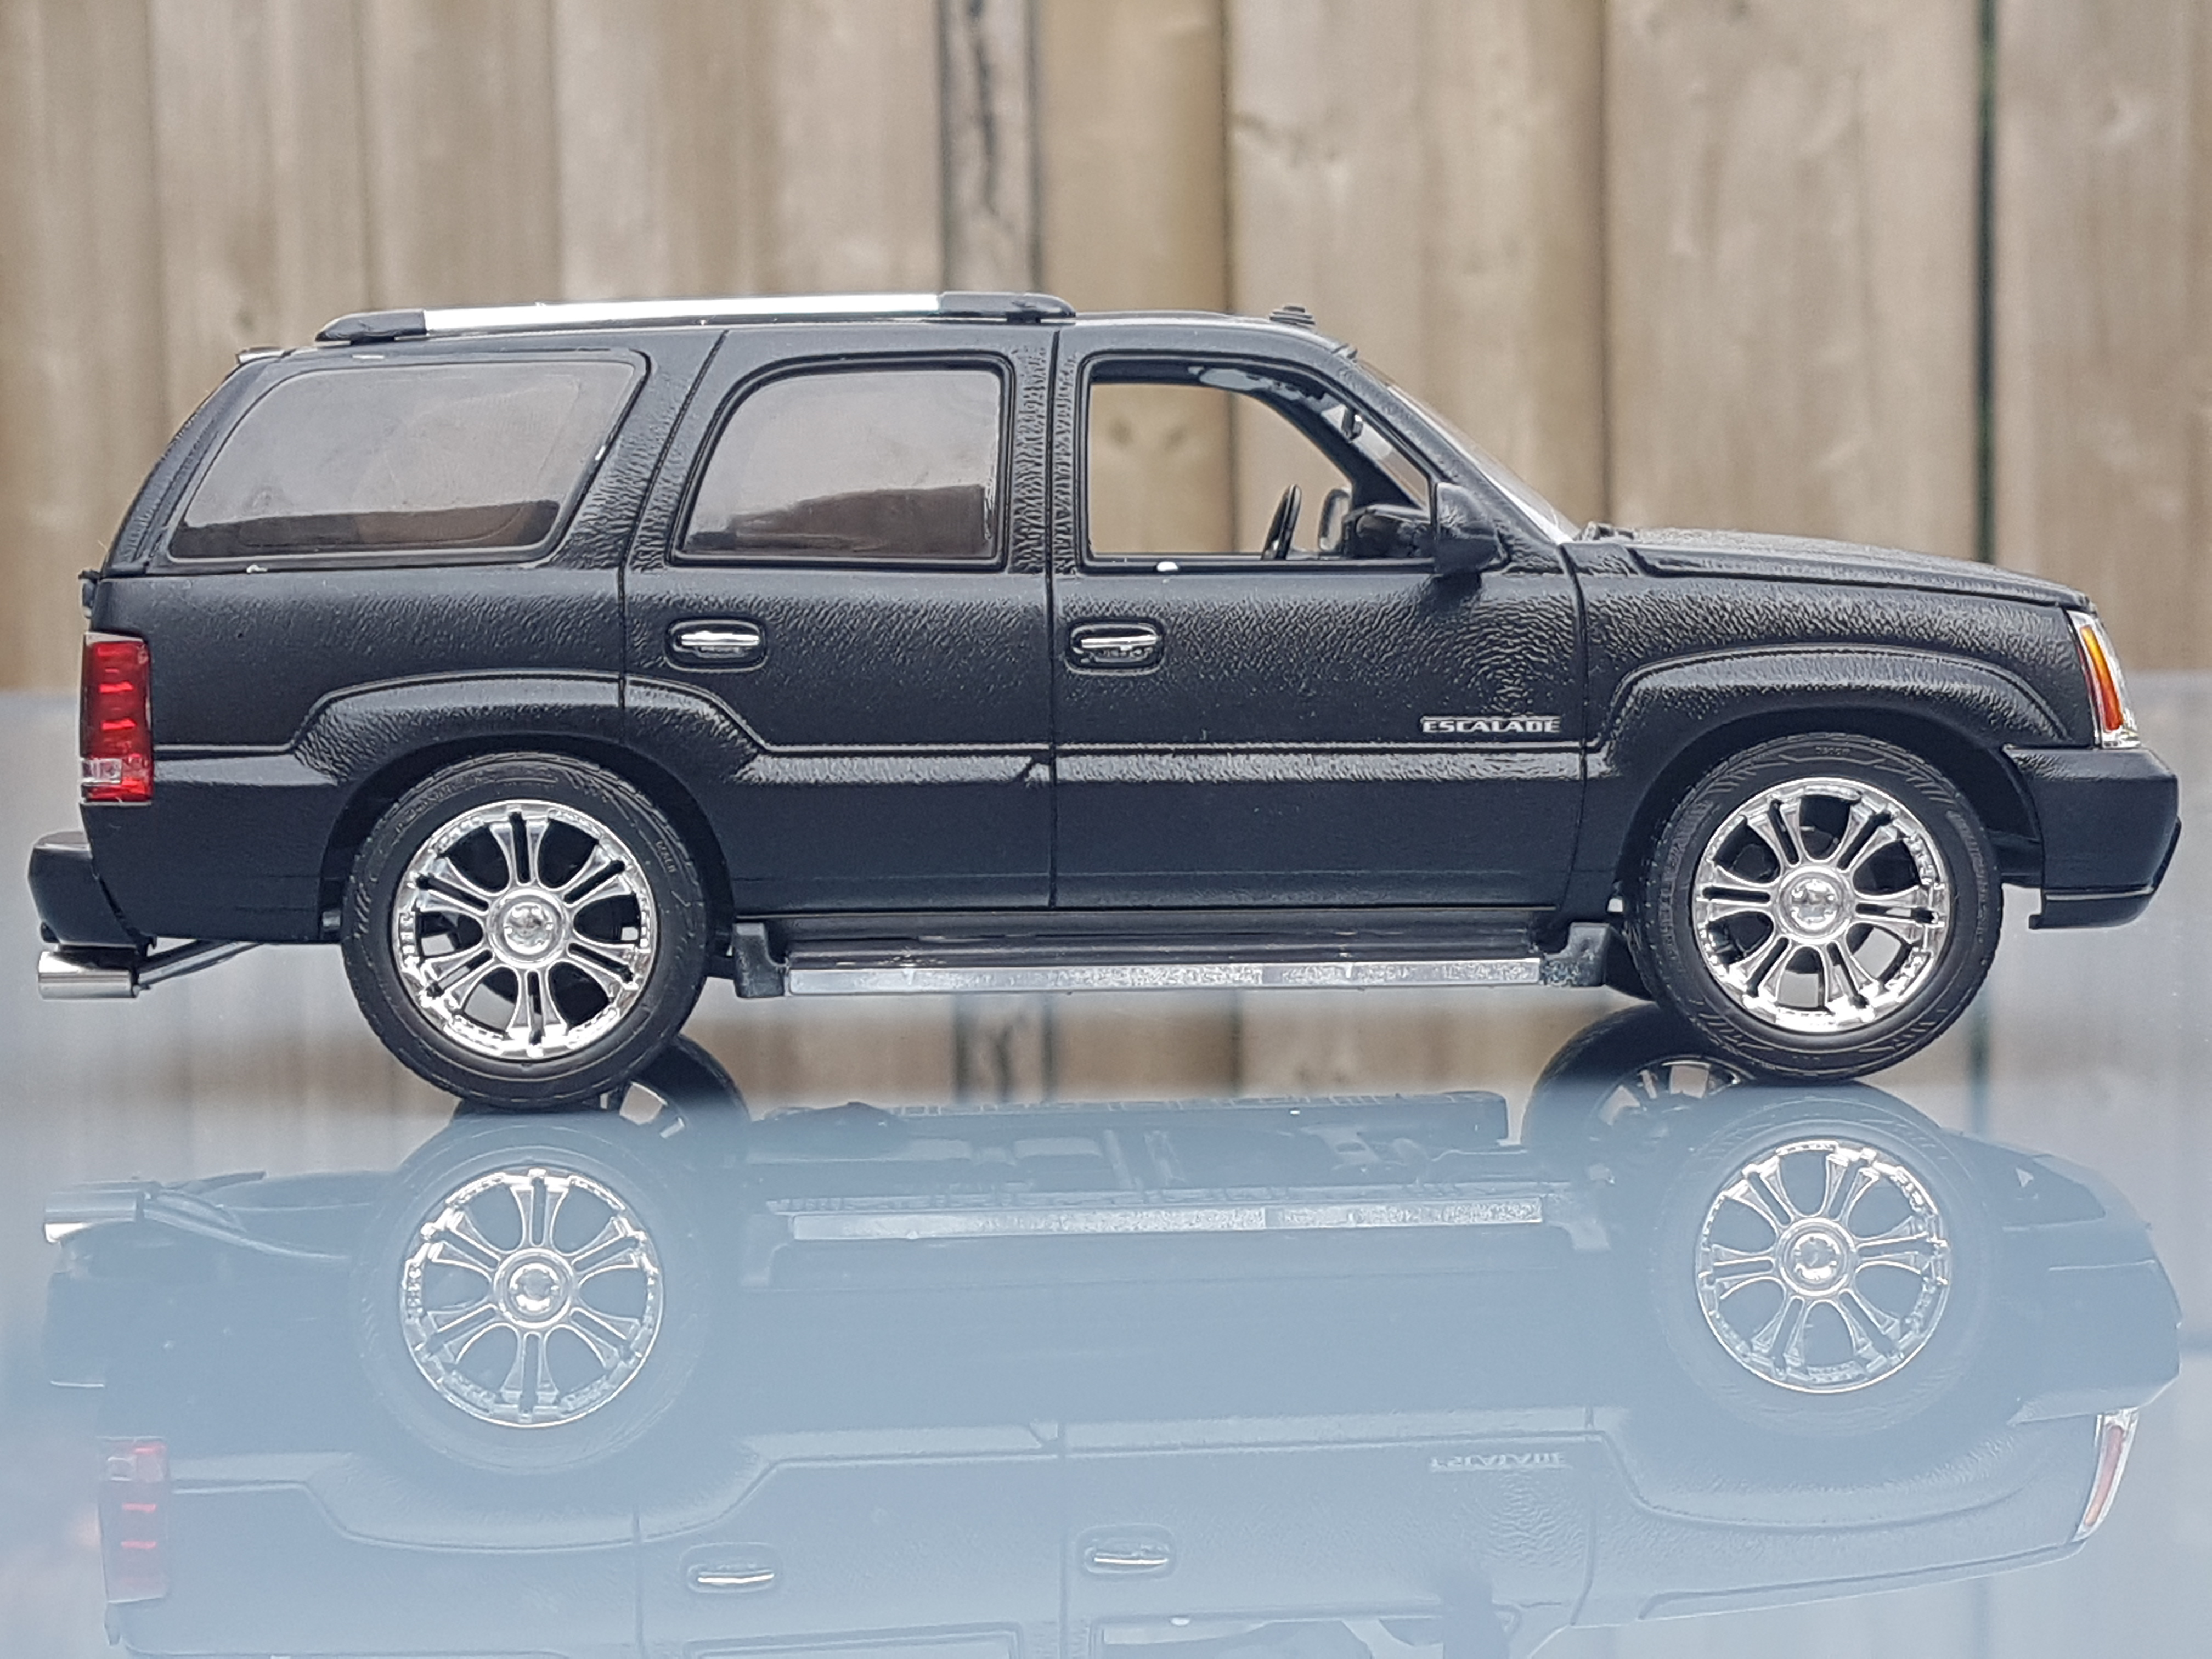 kits for rays sale cadillac escalade revell